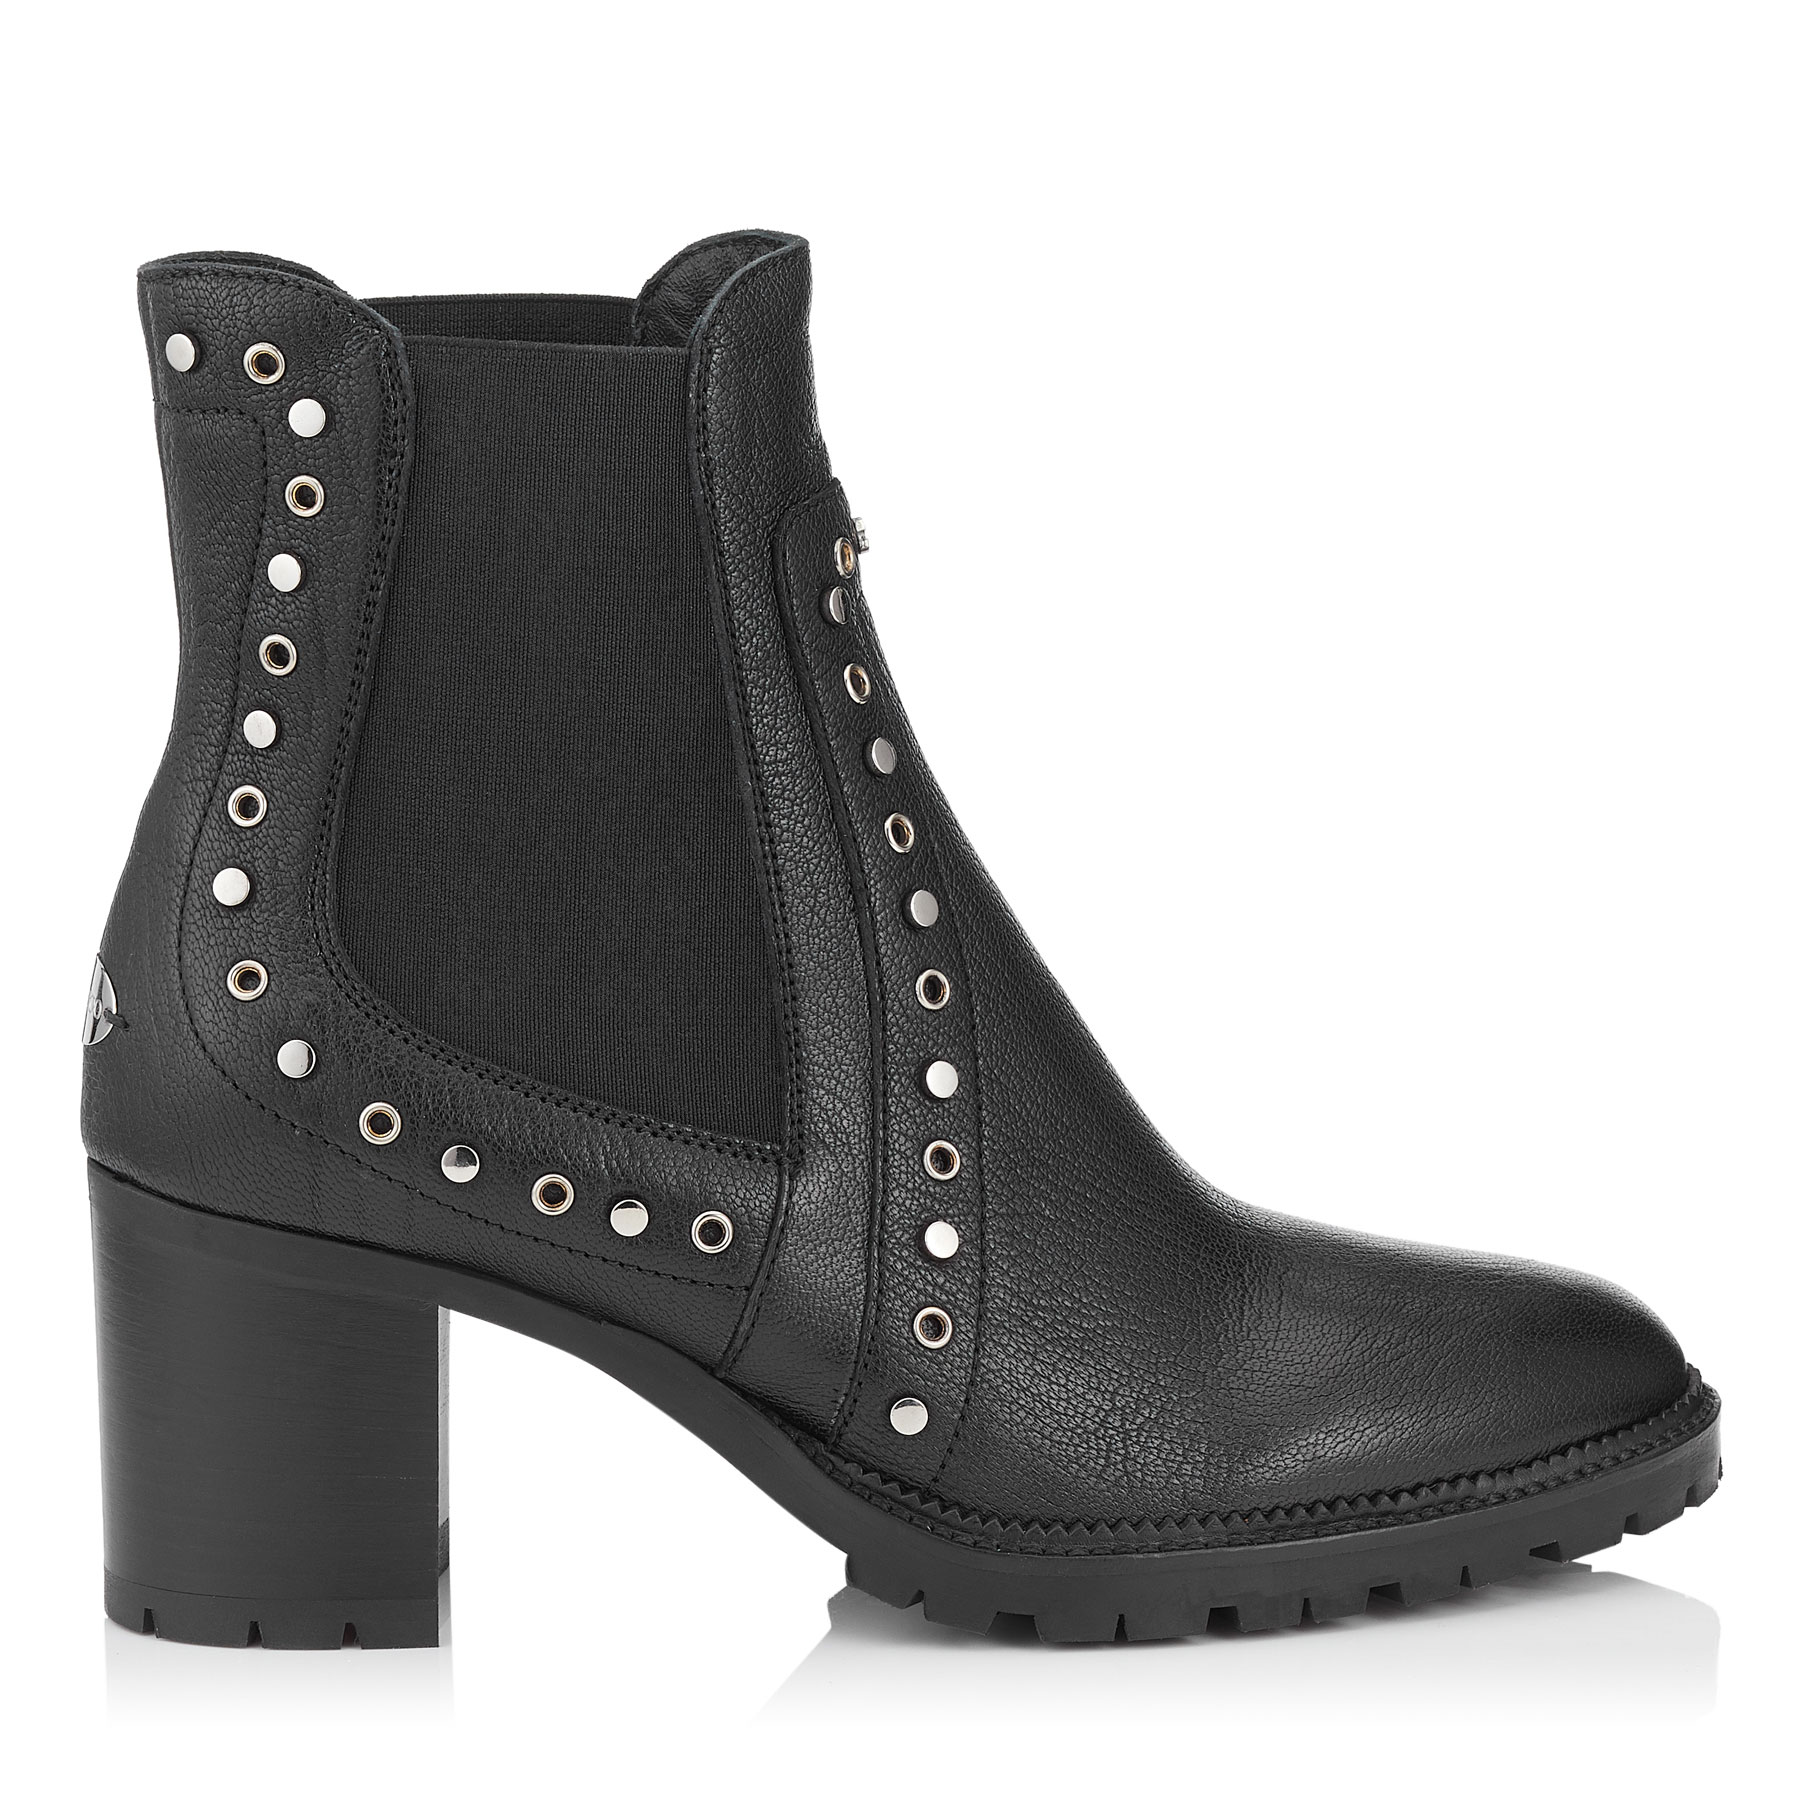 BURROW 65 Black Grainy Leather Biker Boots by Jimmy Choo